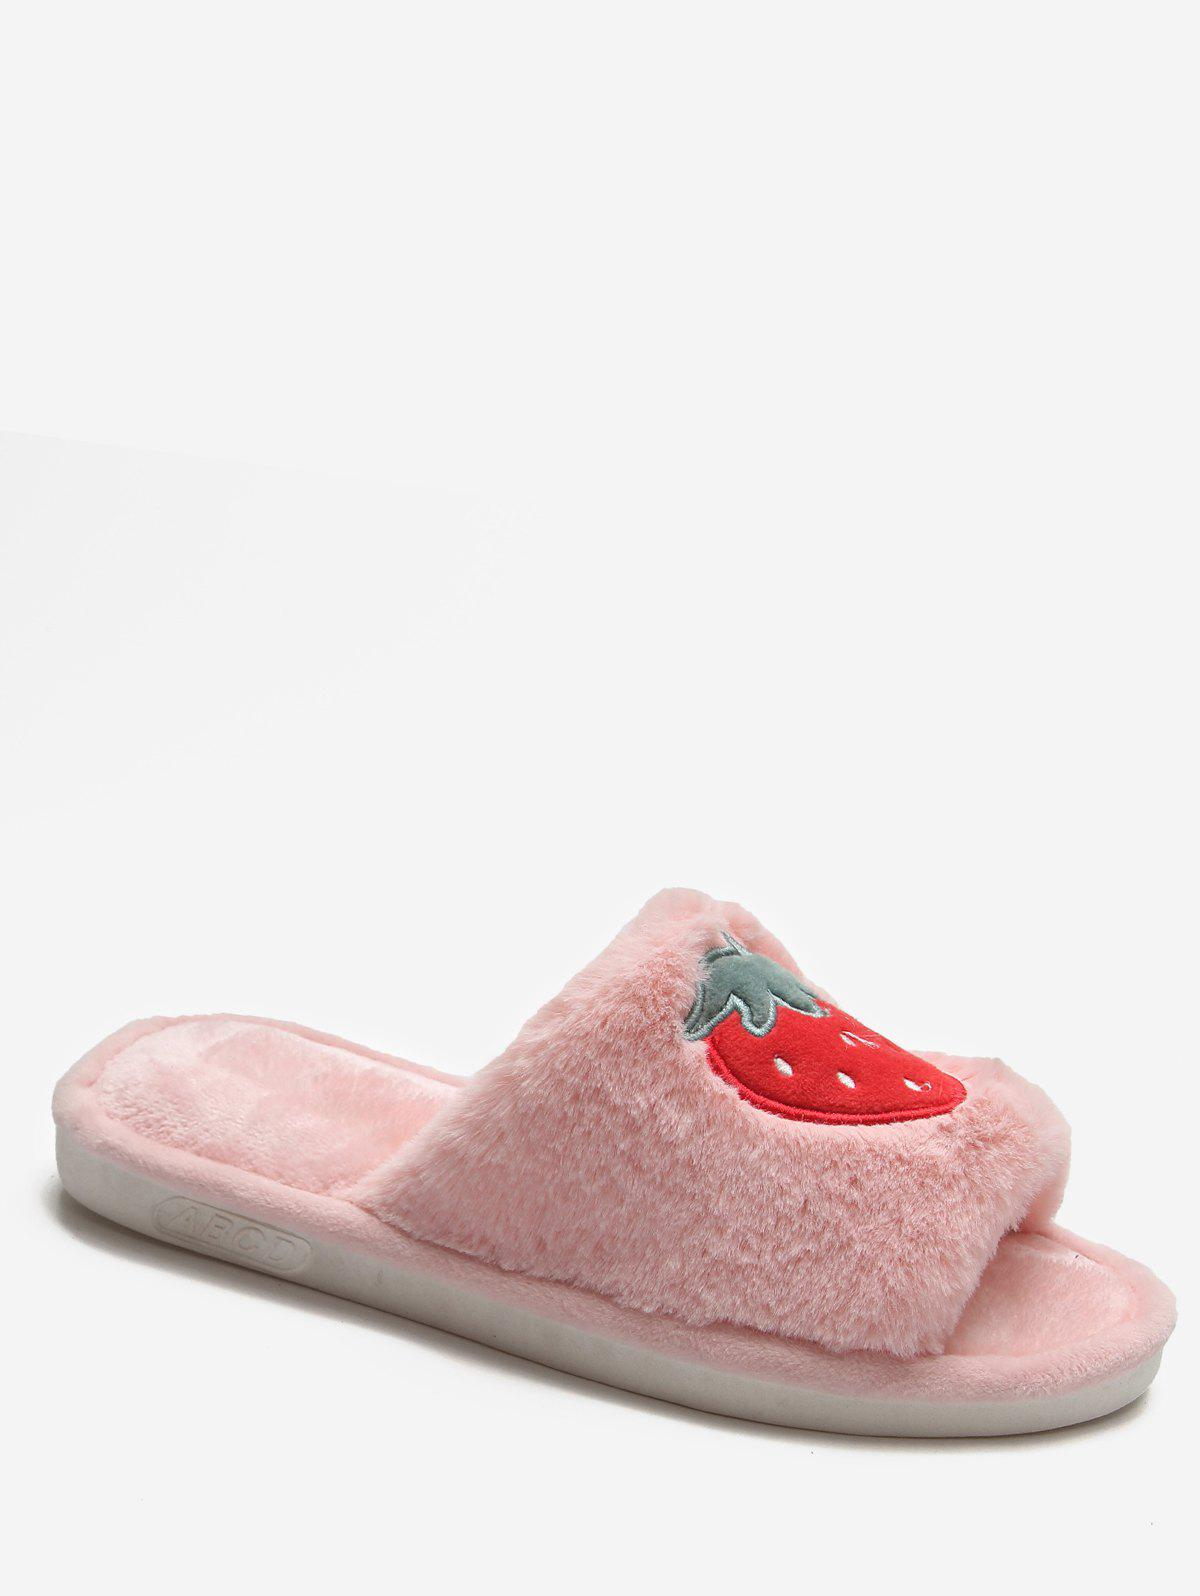 Store Cartoon Fruit Warm Fuzzy Slippers